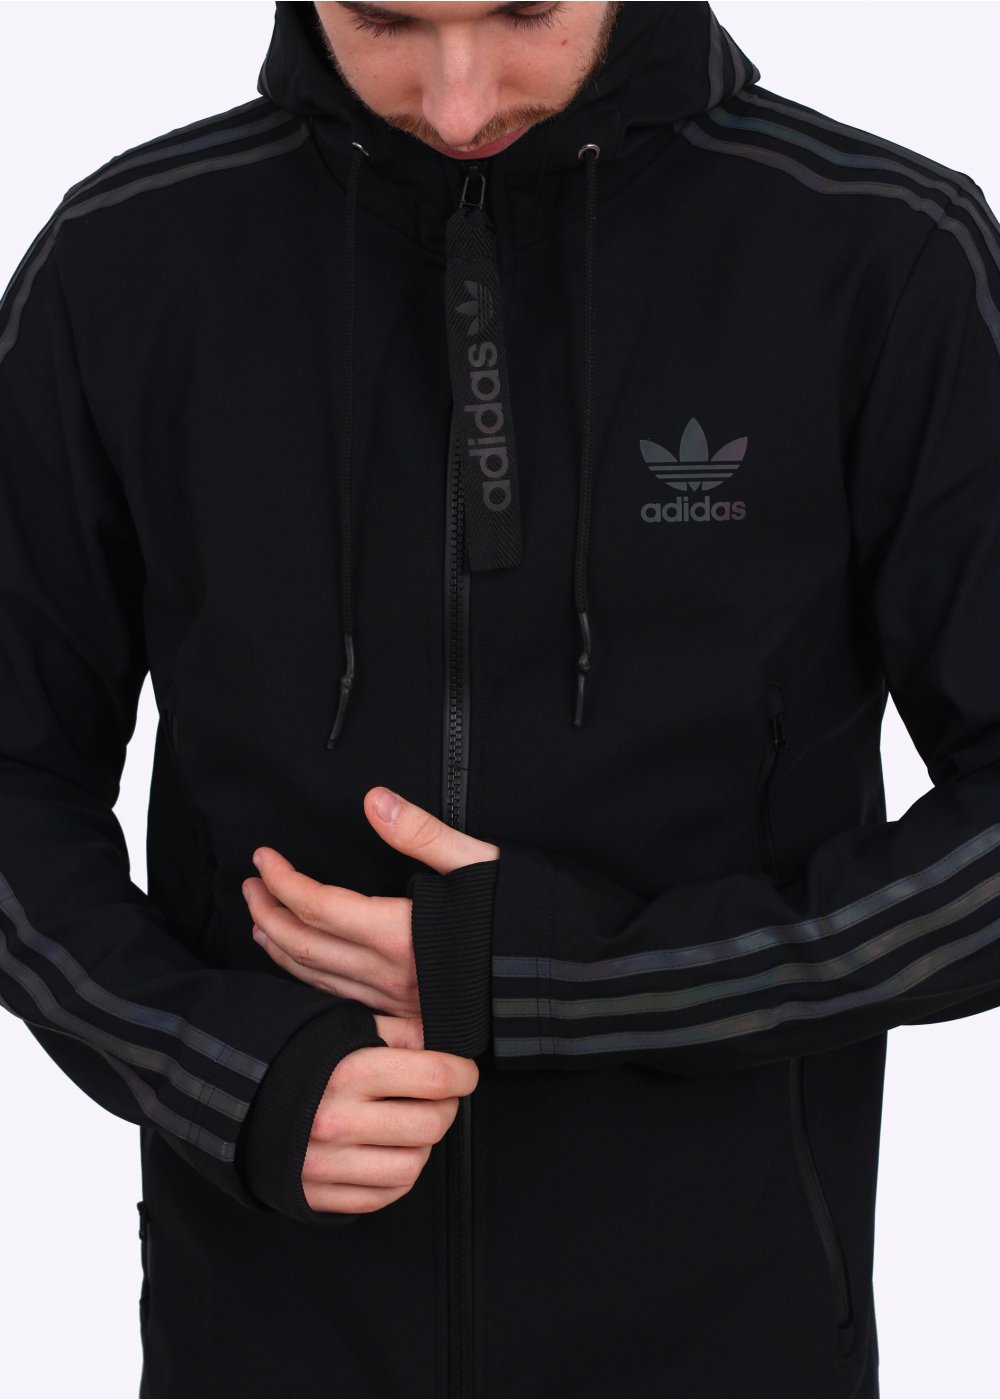 74d27c587 adidas Originals  Xeno Pack  Hoody - Black   Multi Coloured